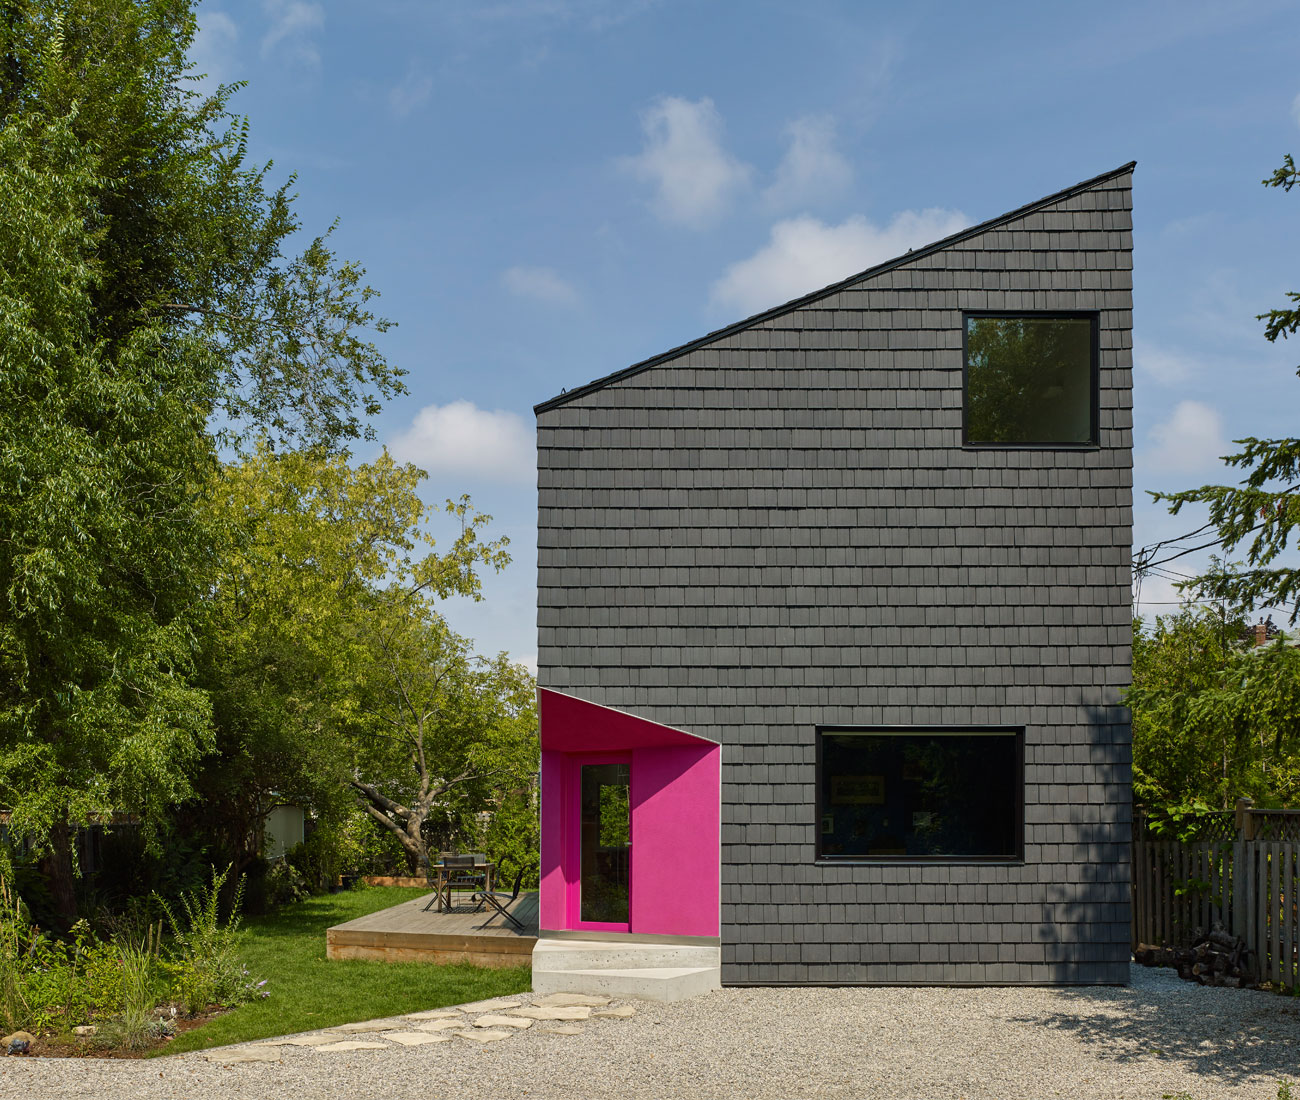 Black Wood Cladding Toronto Designlines Black Timber House Shou Sugi Ban House Charred Wood Regio & Bauer